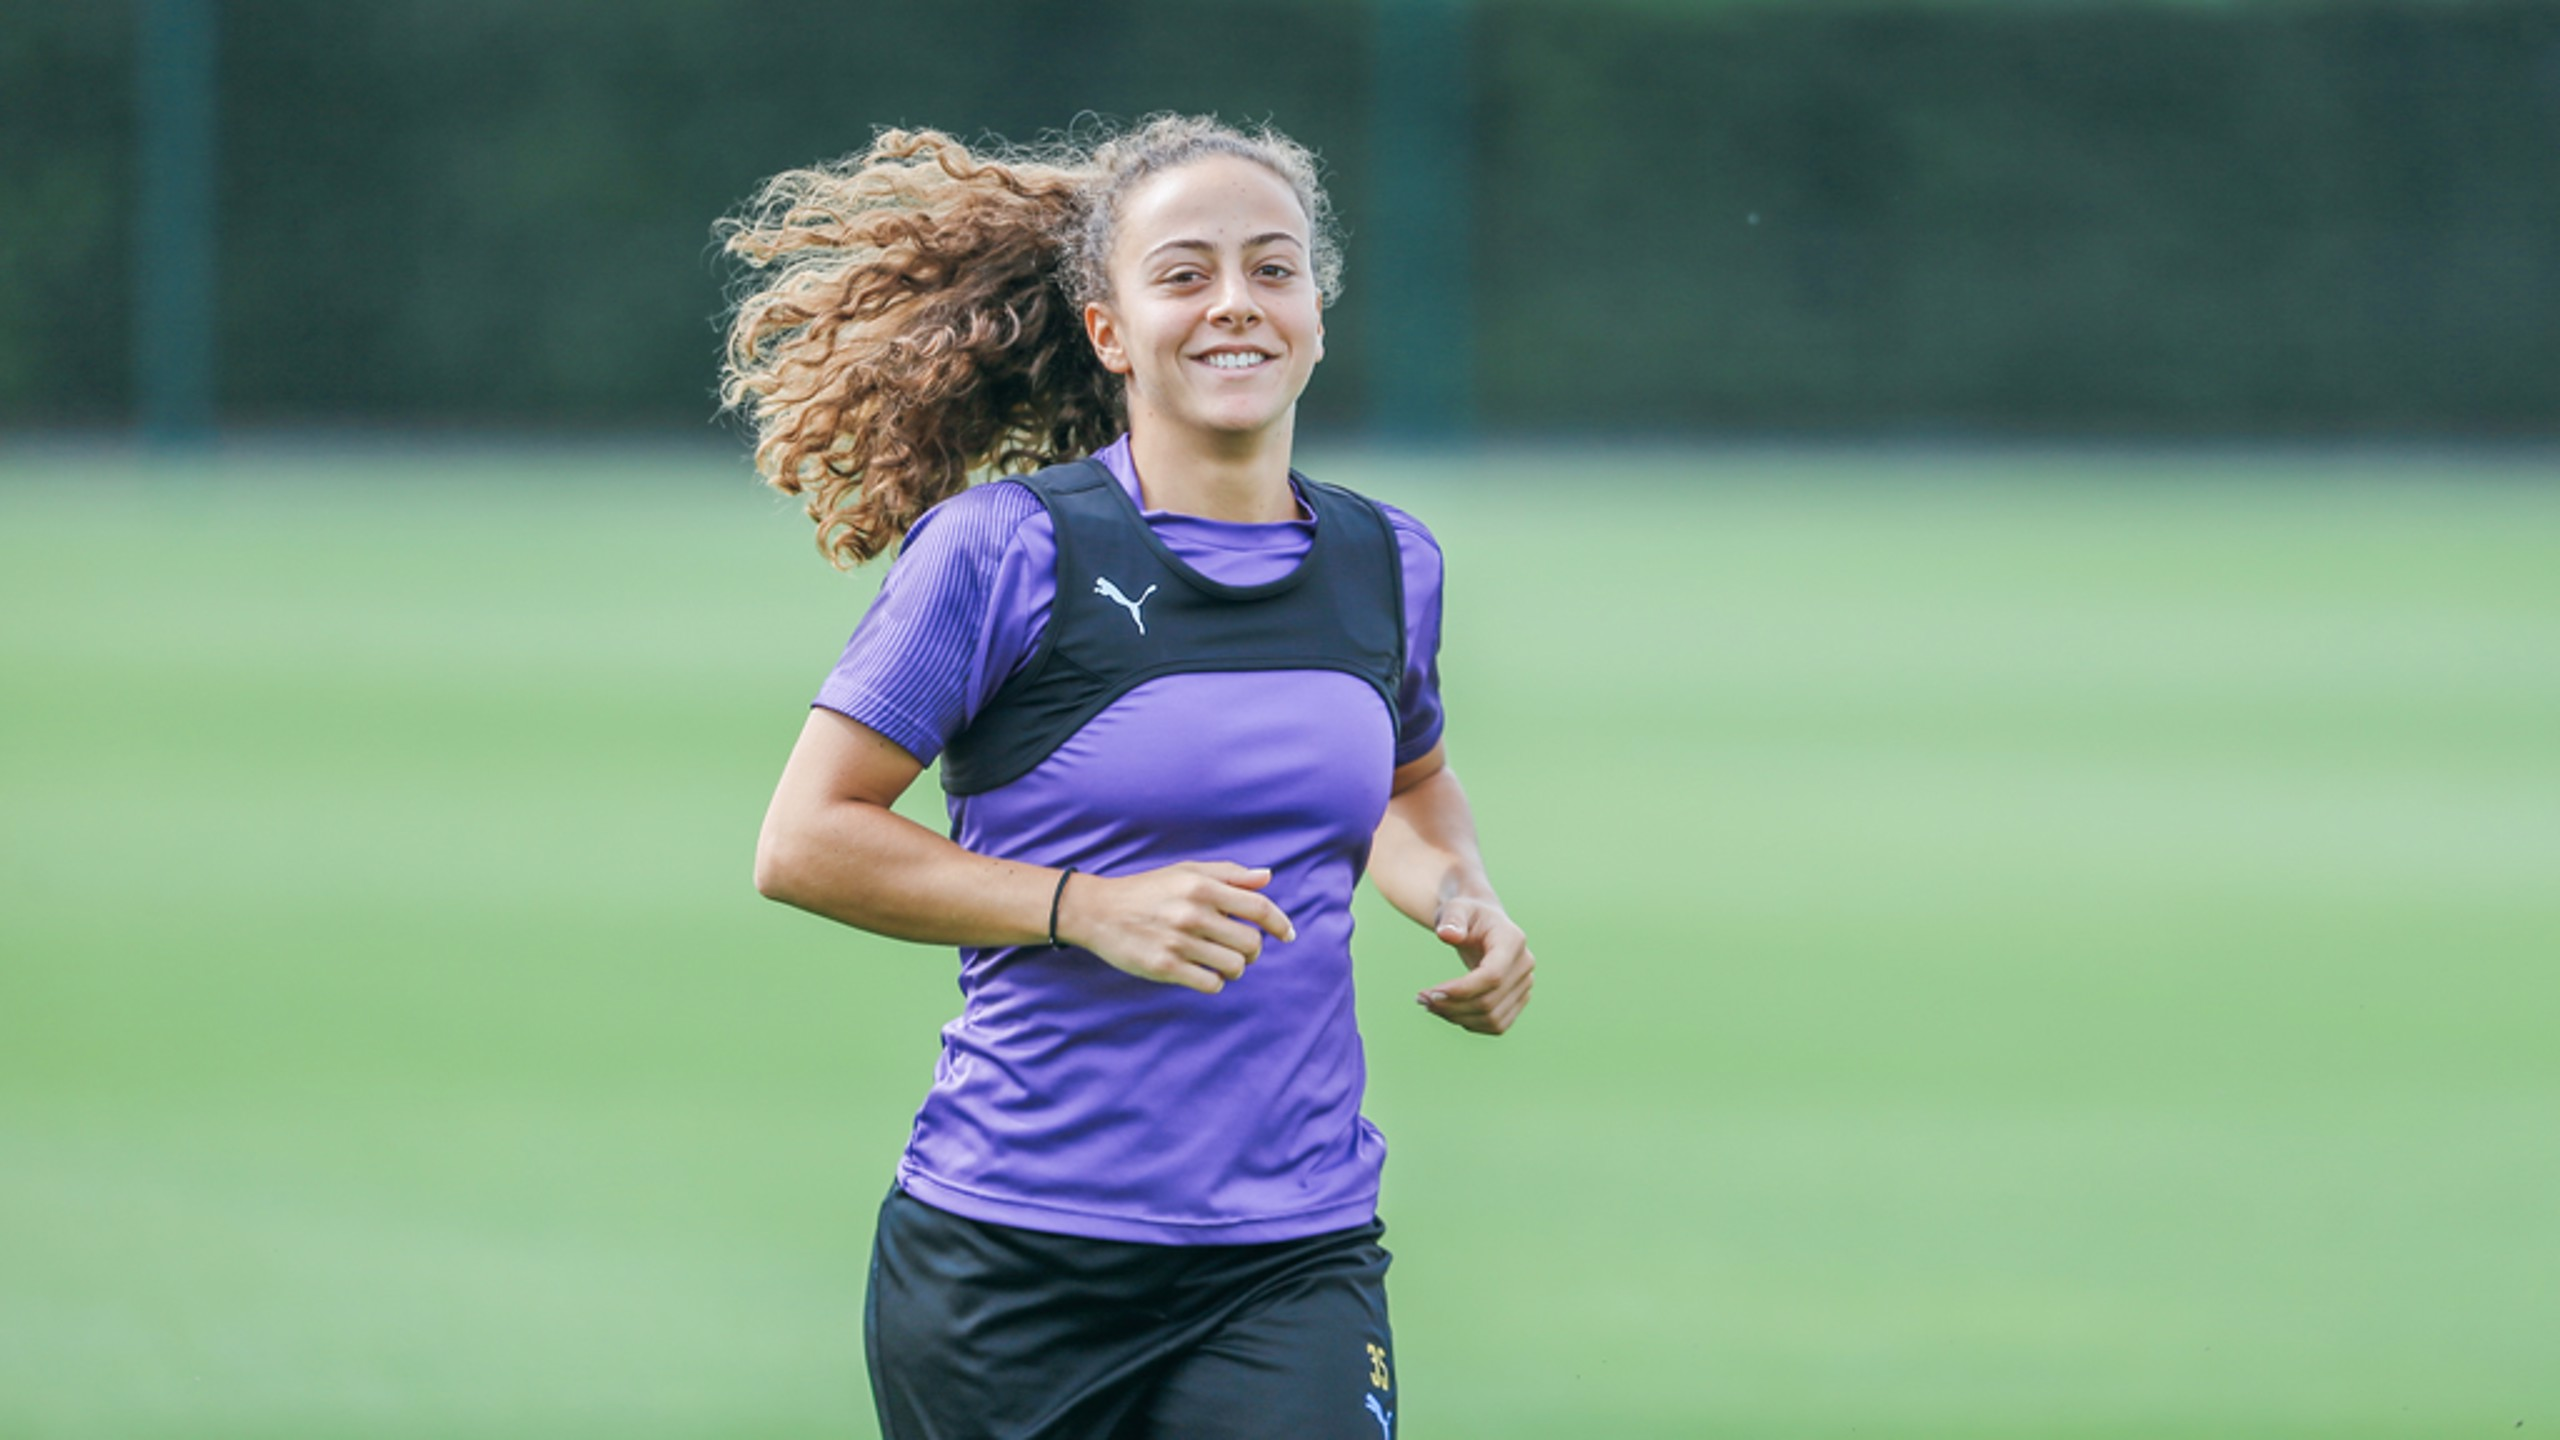 ALL SMILES: The Portuguese midfielder looks delighted at getting into the swing of things at City